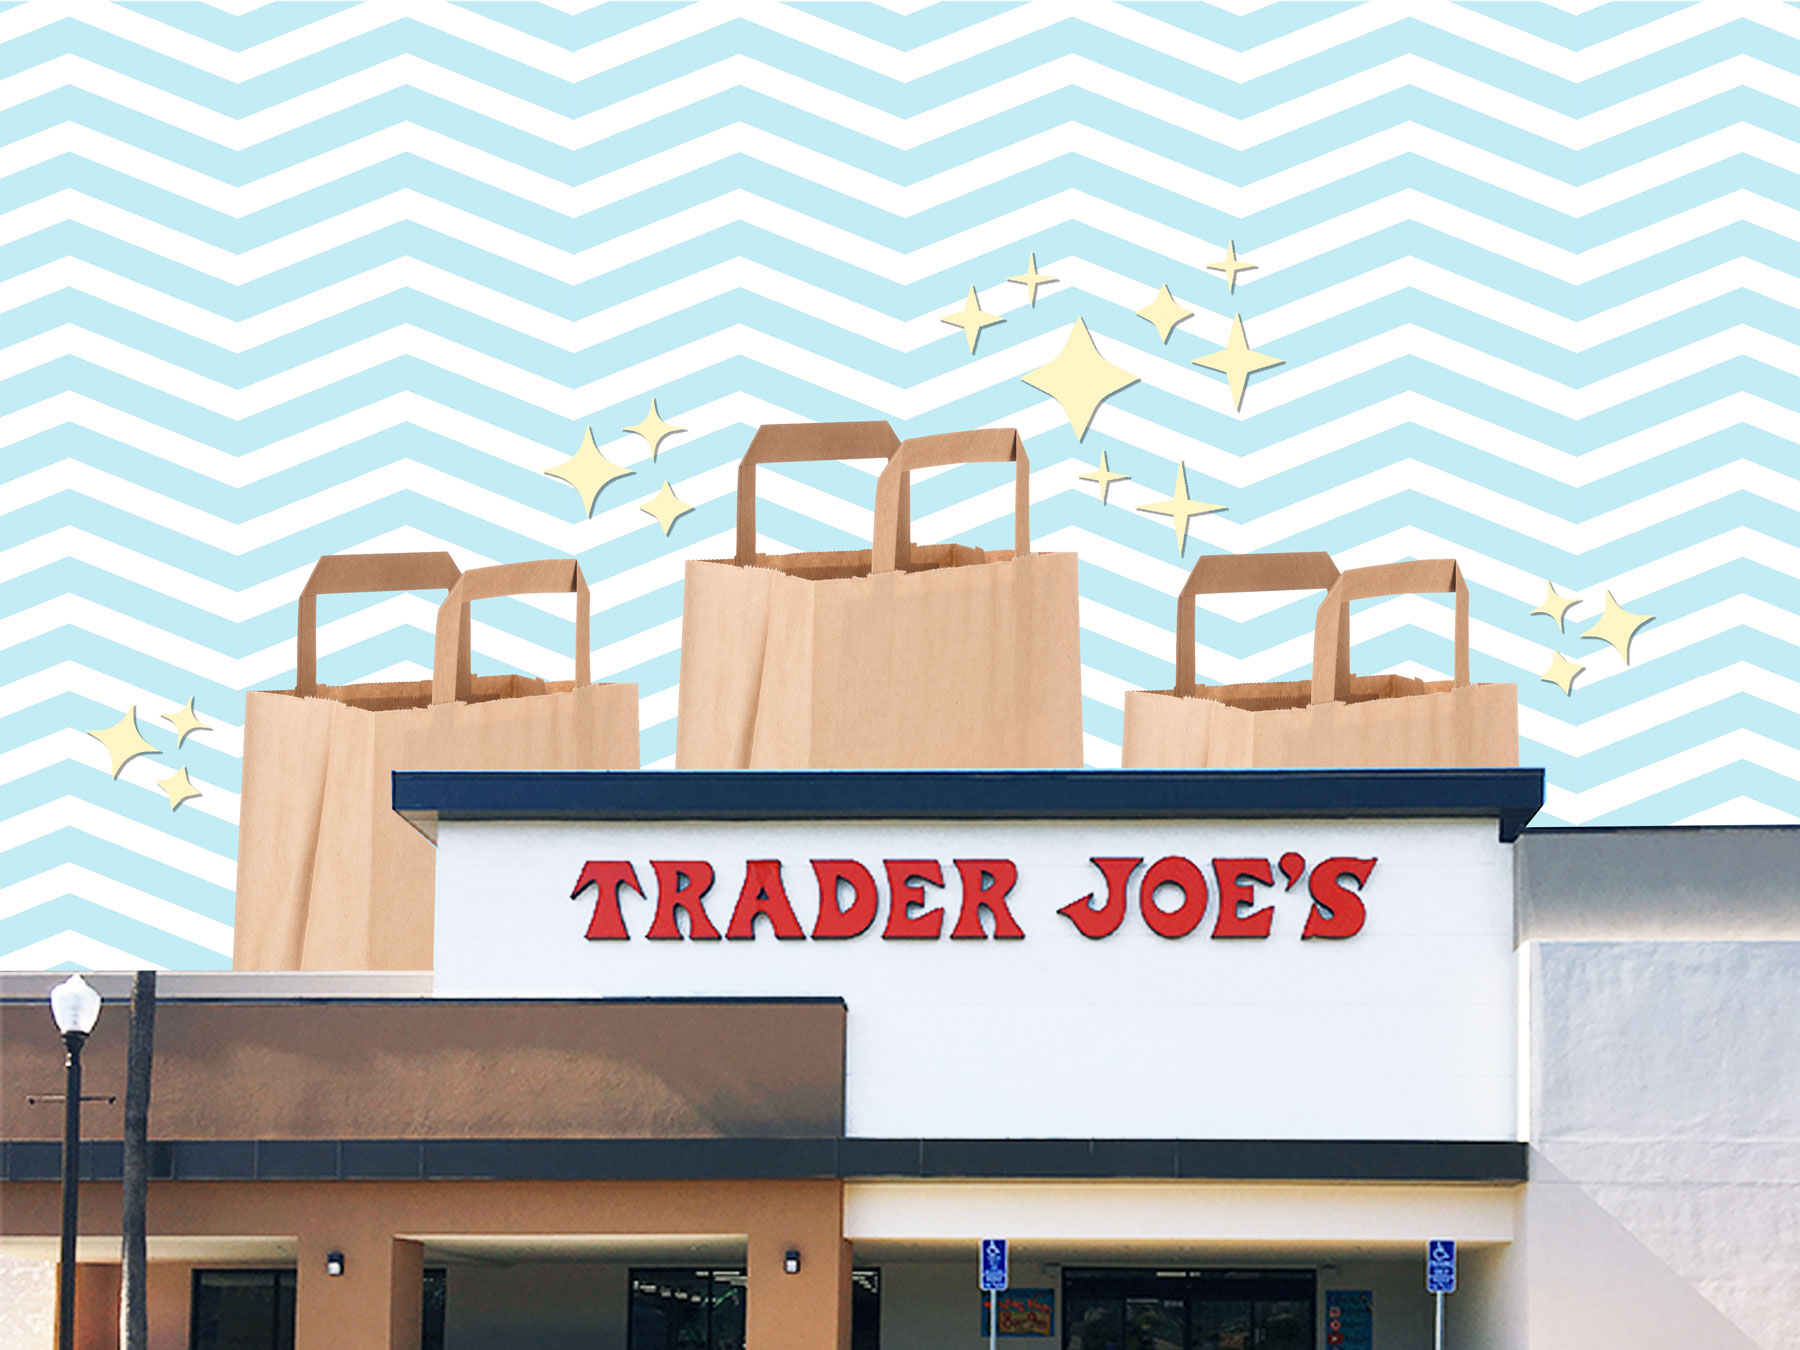 Trader Joe's products - the best Trader Joe's snacks, as picked by editors